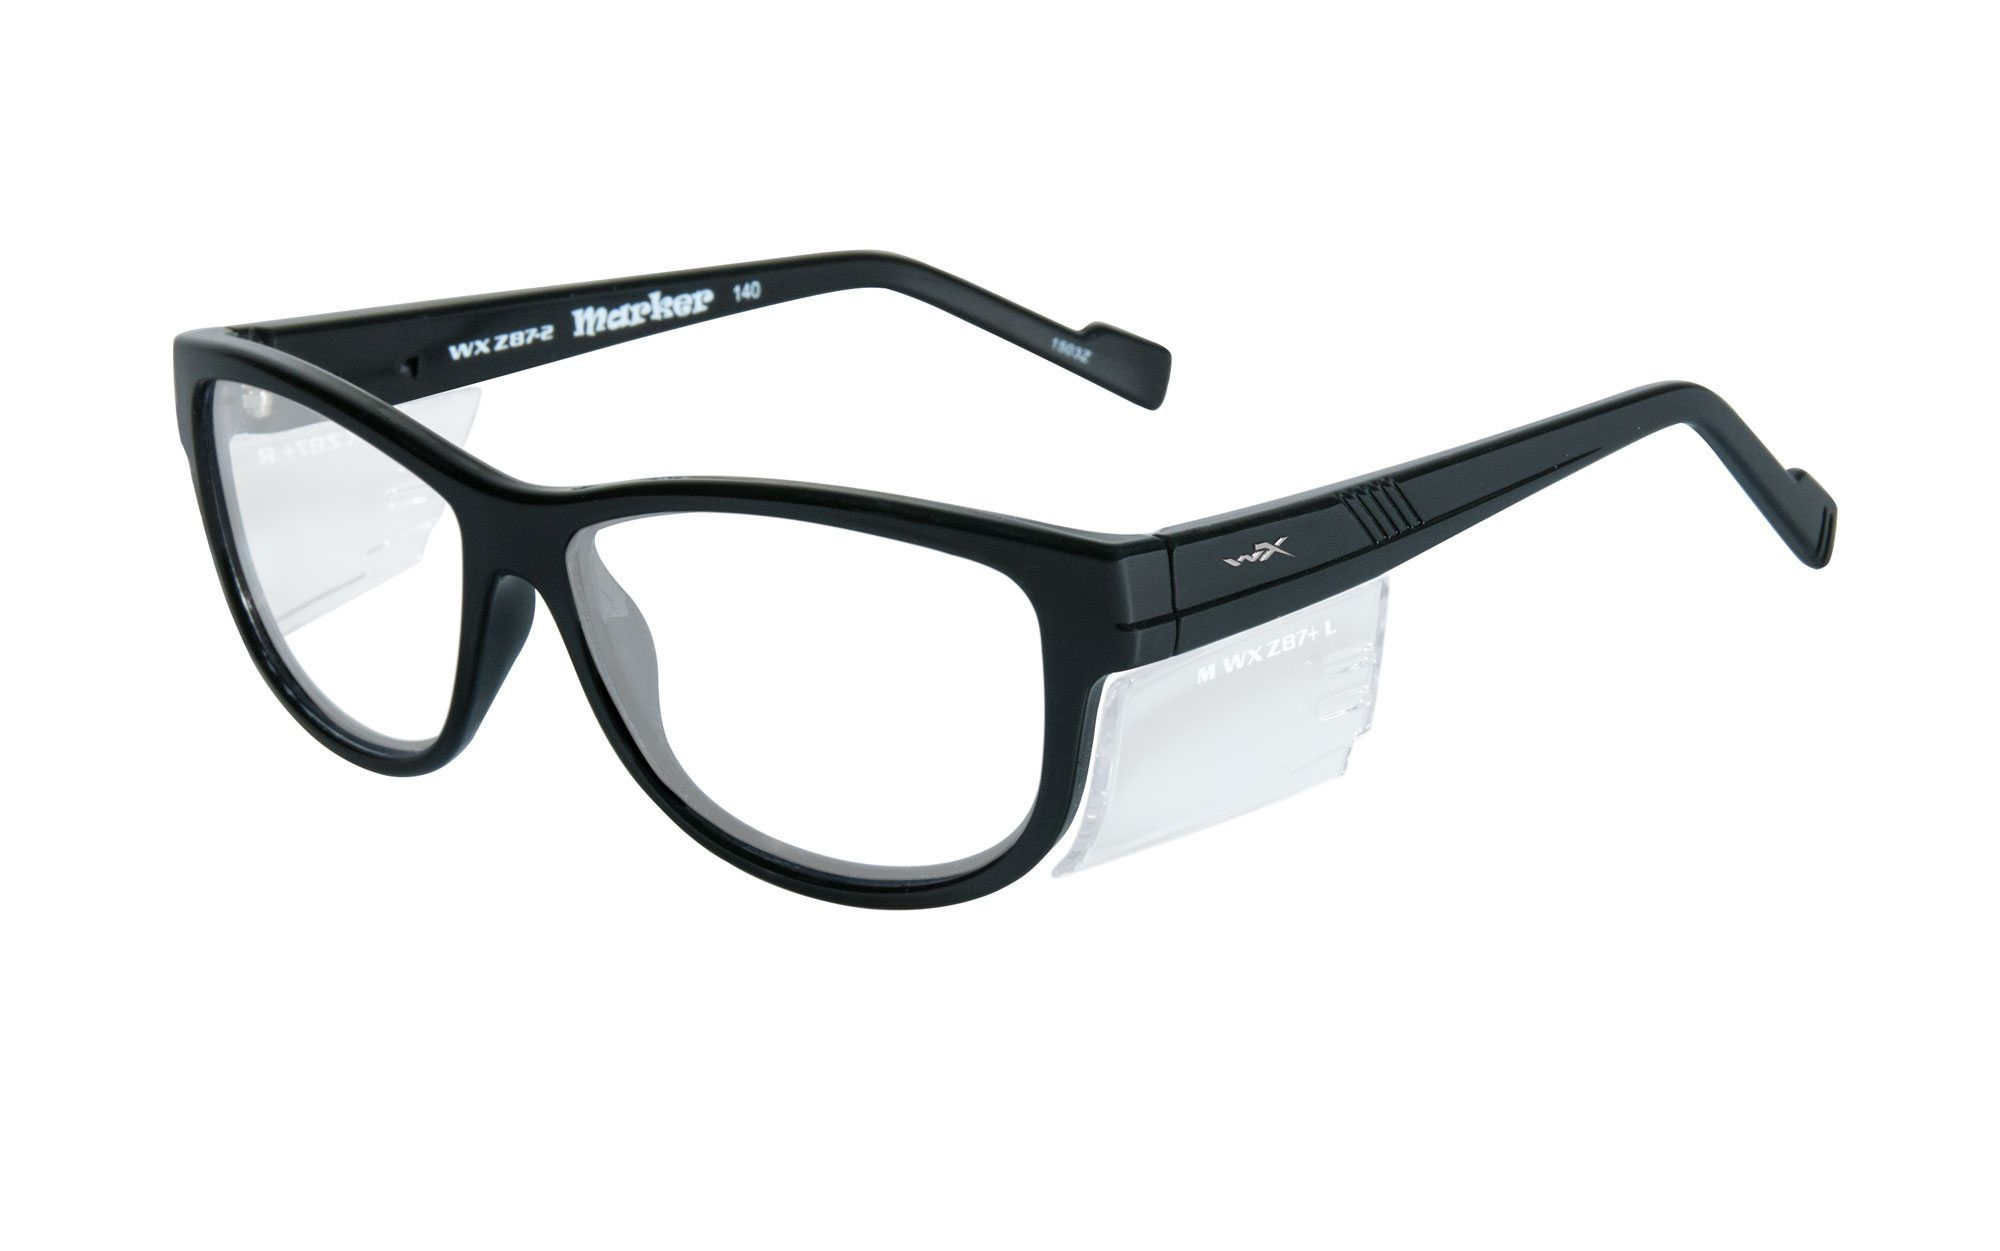 Matte Black Frame Eyeglasses Wiley X Worksight Wx Profile Clear